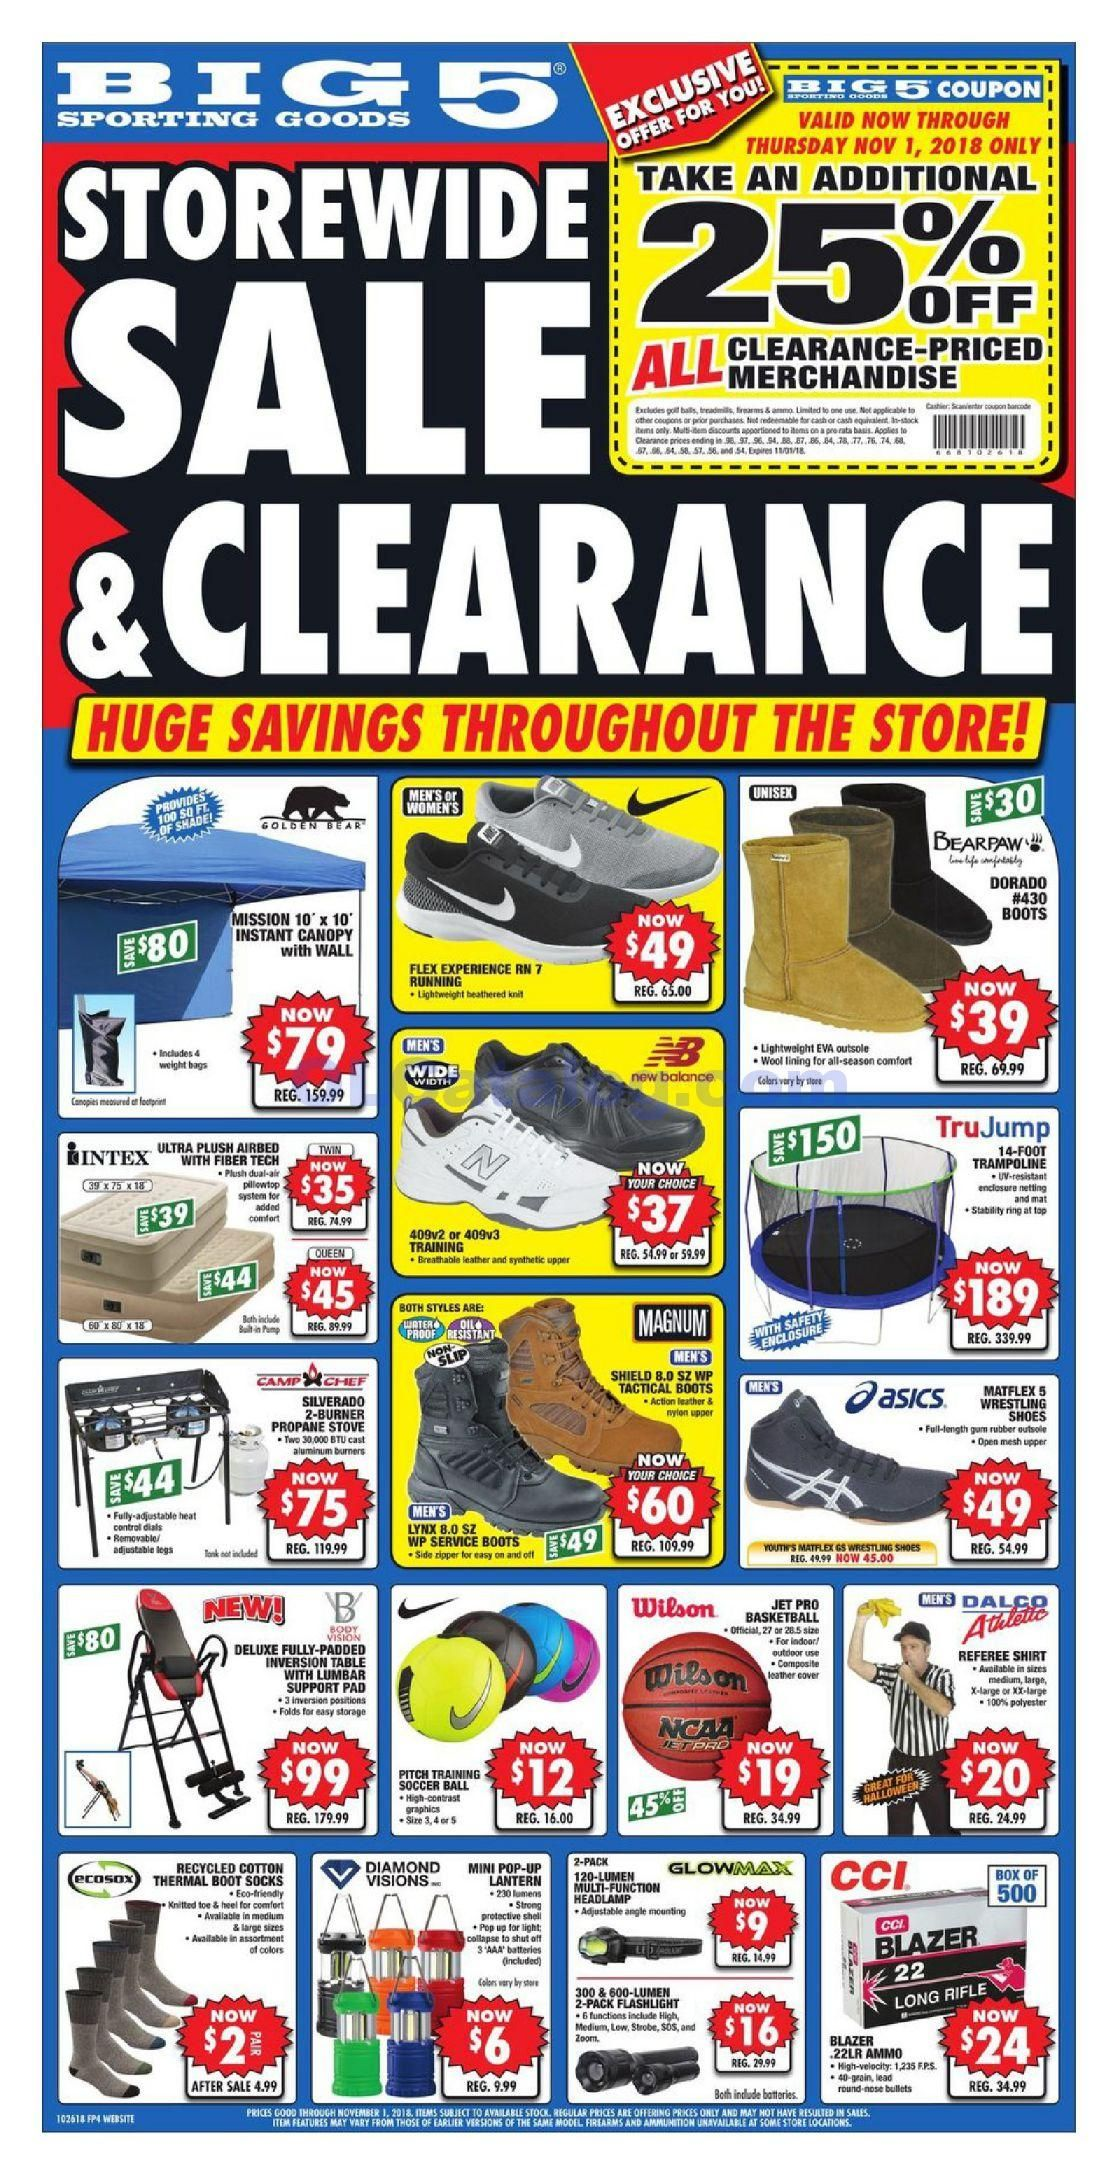 Big 5 Weekly Ad October 26 November 1 2018 Do You Know What S In And What S Hot In The Big 5 For This Week If You Haven T Using The Store S Weekly Adverti